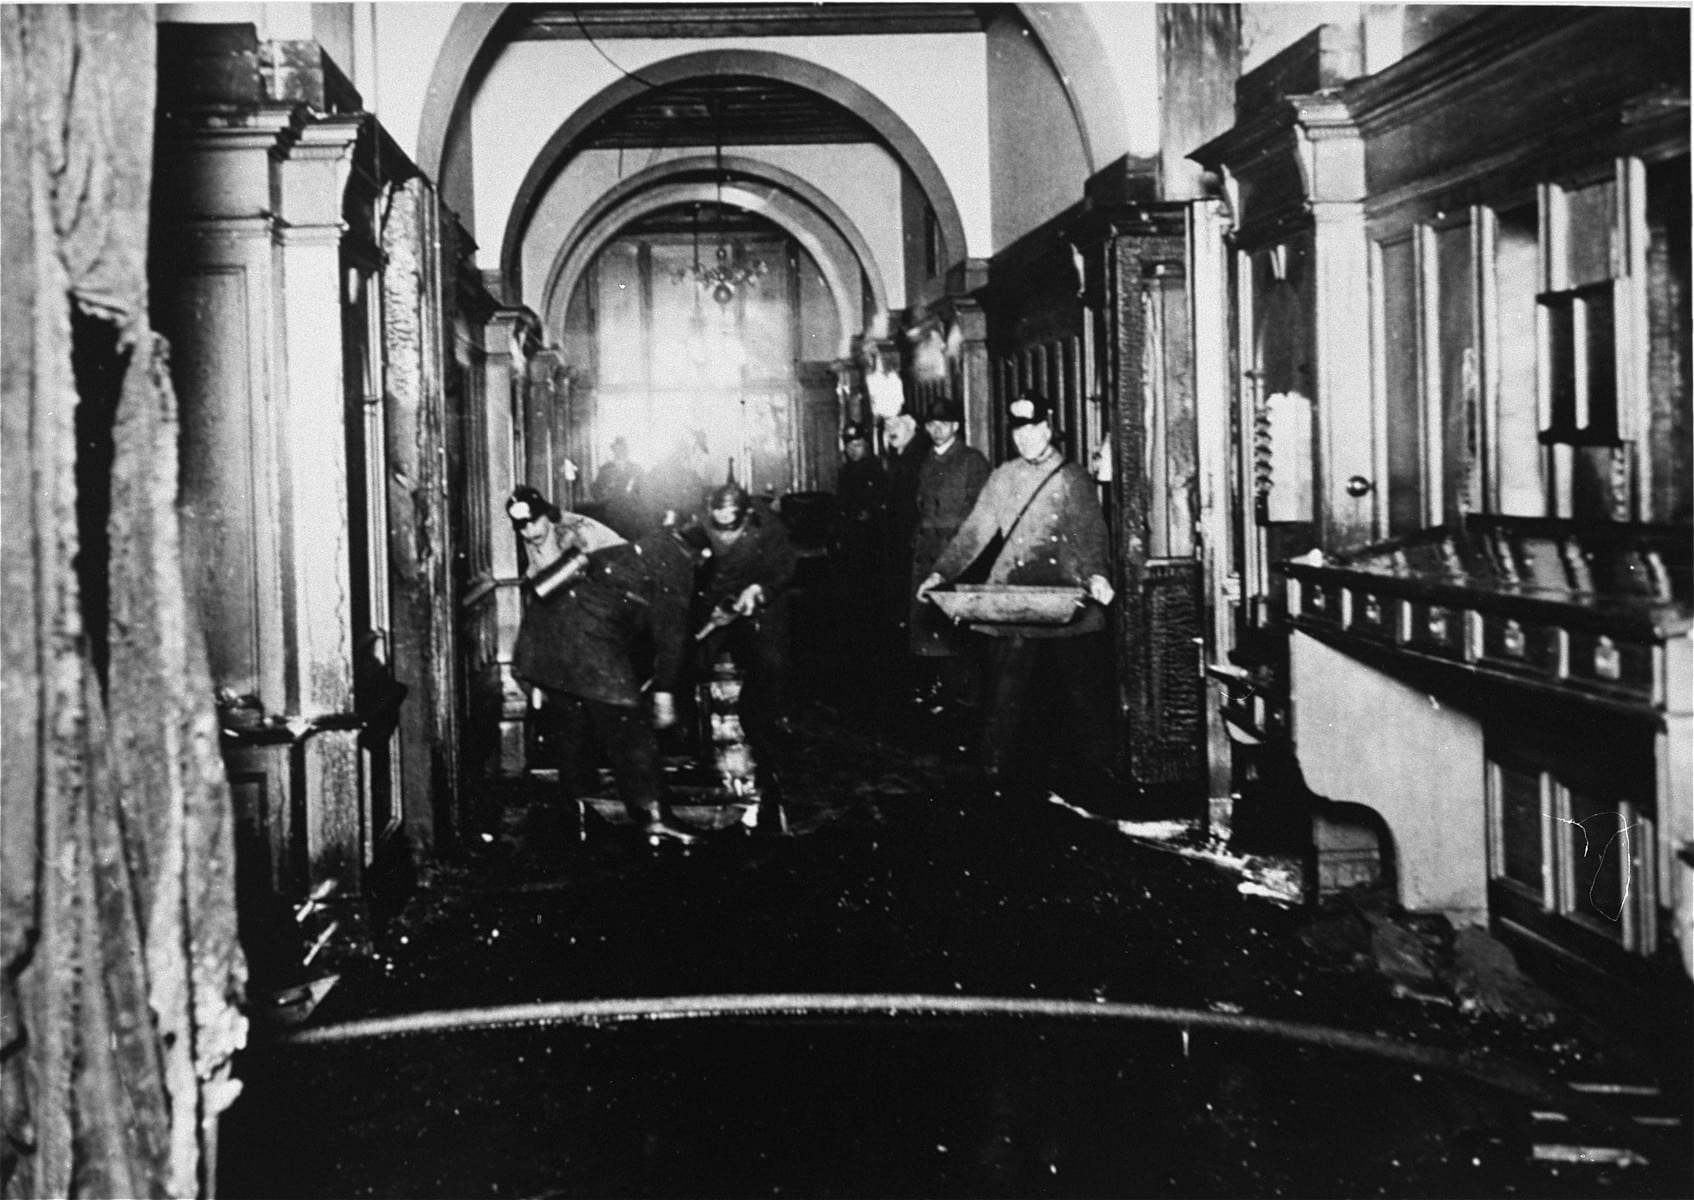 Firefighters inside the German parliament during the Reichstag fire, February 27th 1933